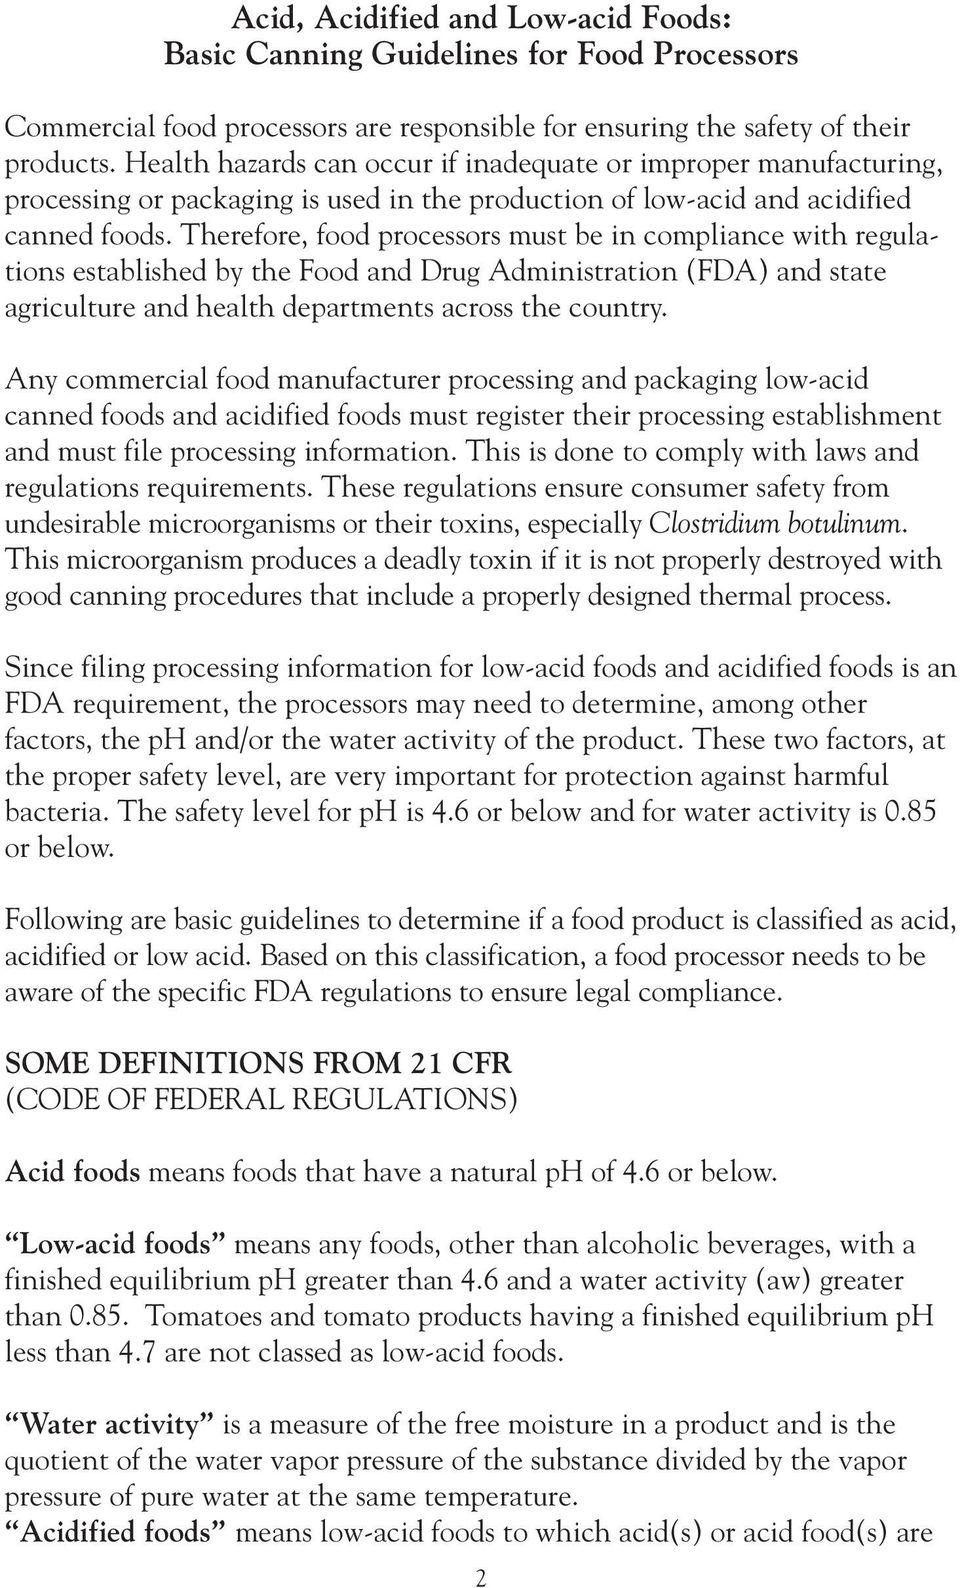 Therefore, food processors must be in compliance with regulations established by the Food and Drug Administration (FDA) and state agriculture and health departments across the country.